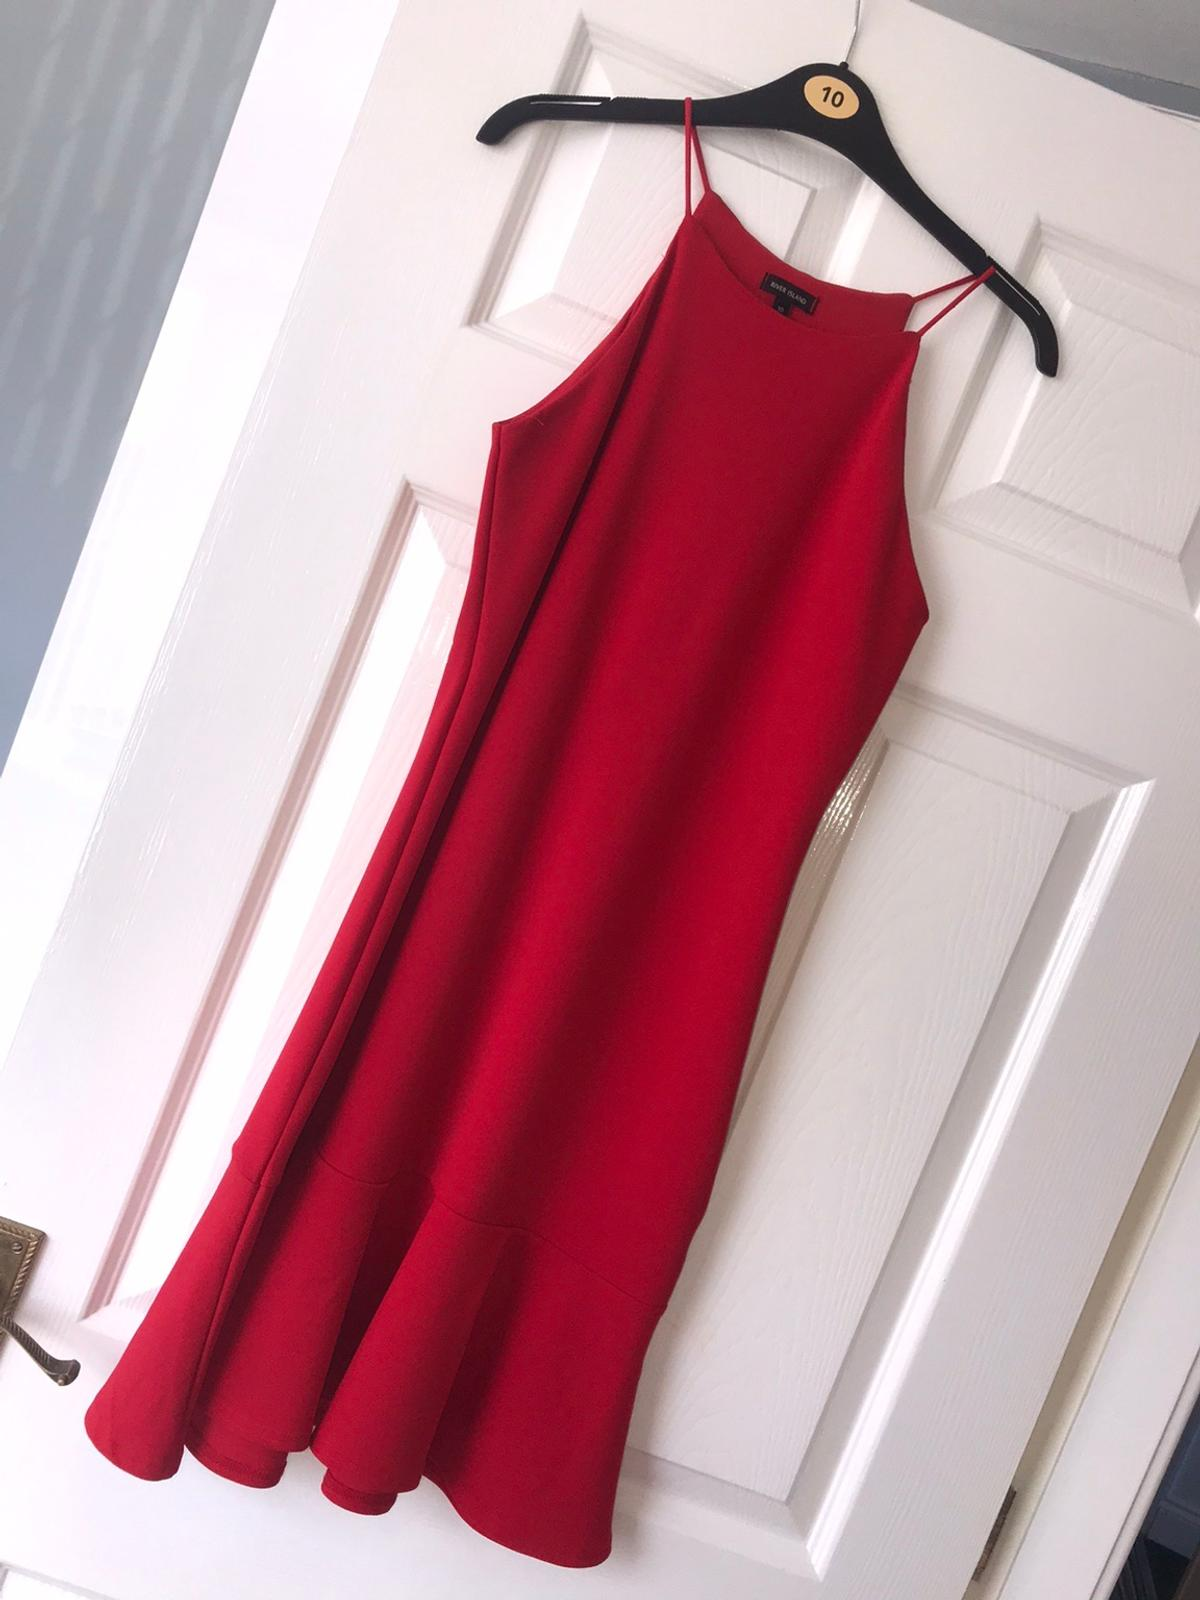 River island dress Great condition worn once Size 8